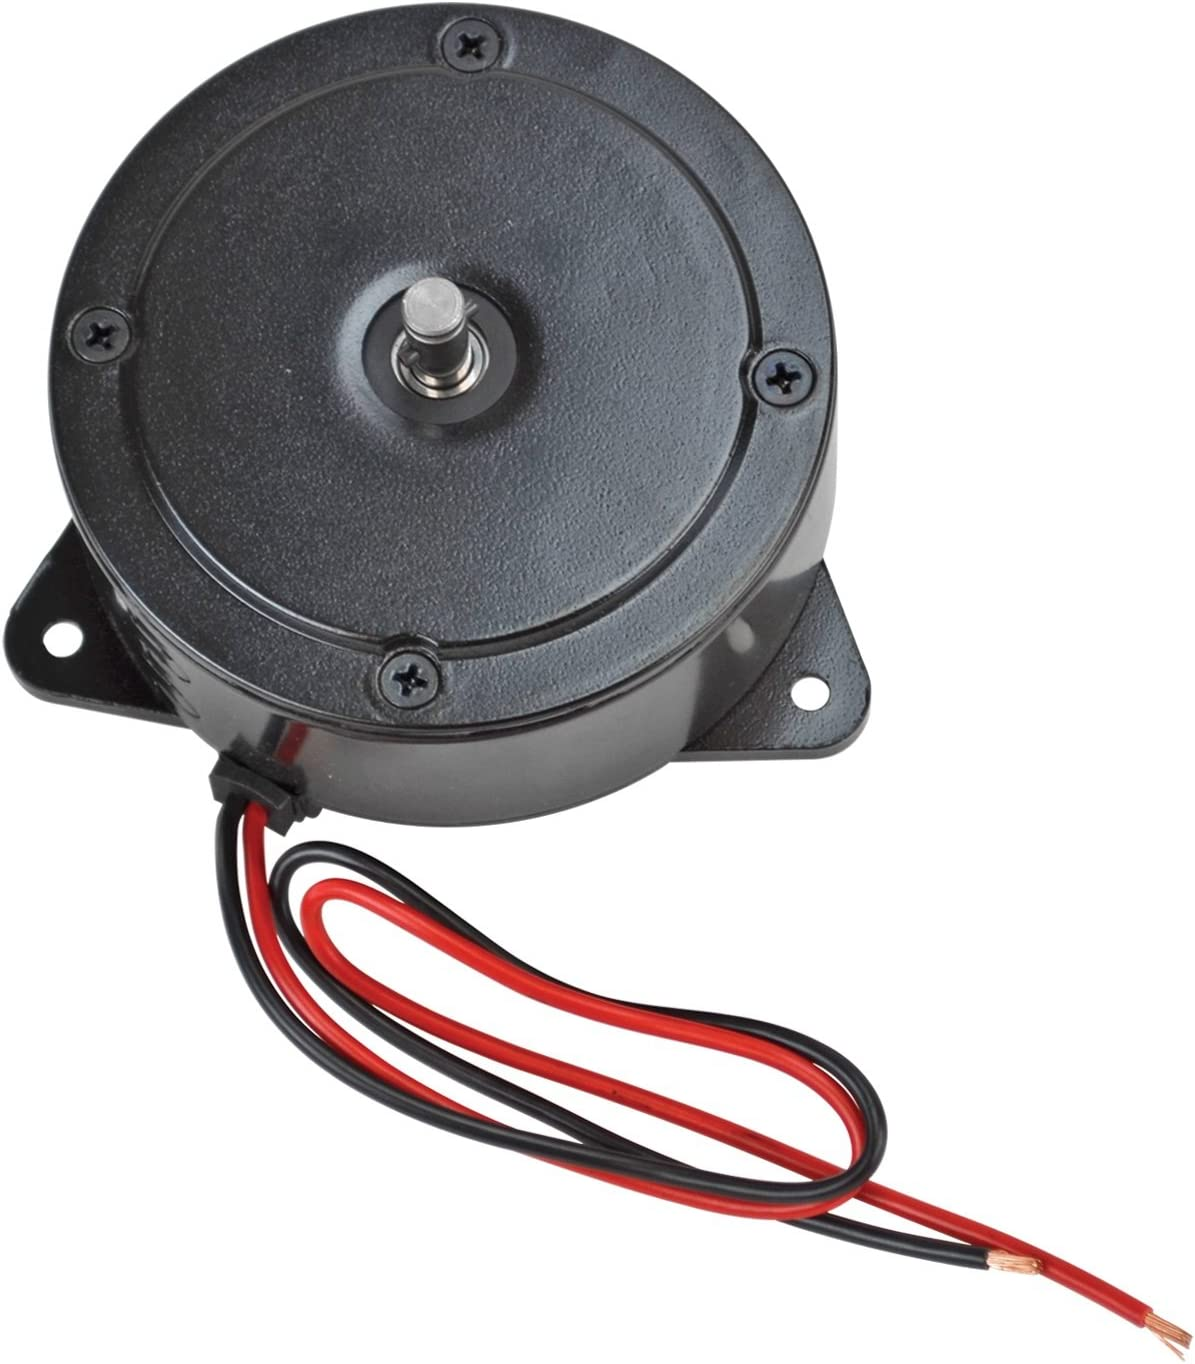 Flex-a-lite 30178 Electric Fan Motor 11224 security PN 11 Super special price Replacement for